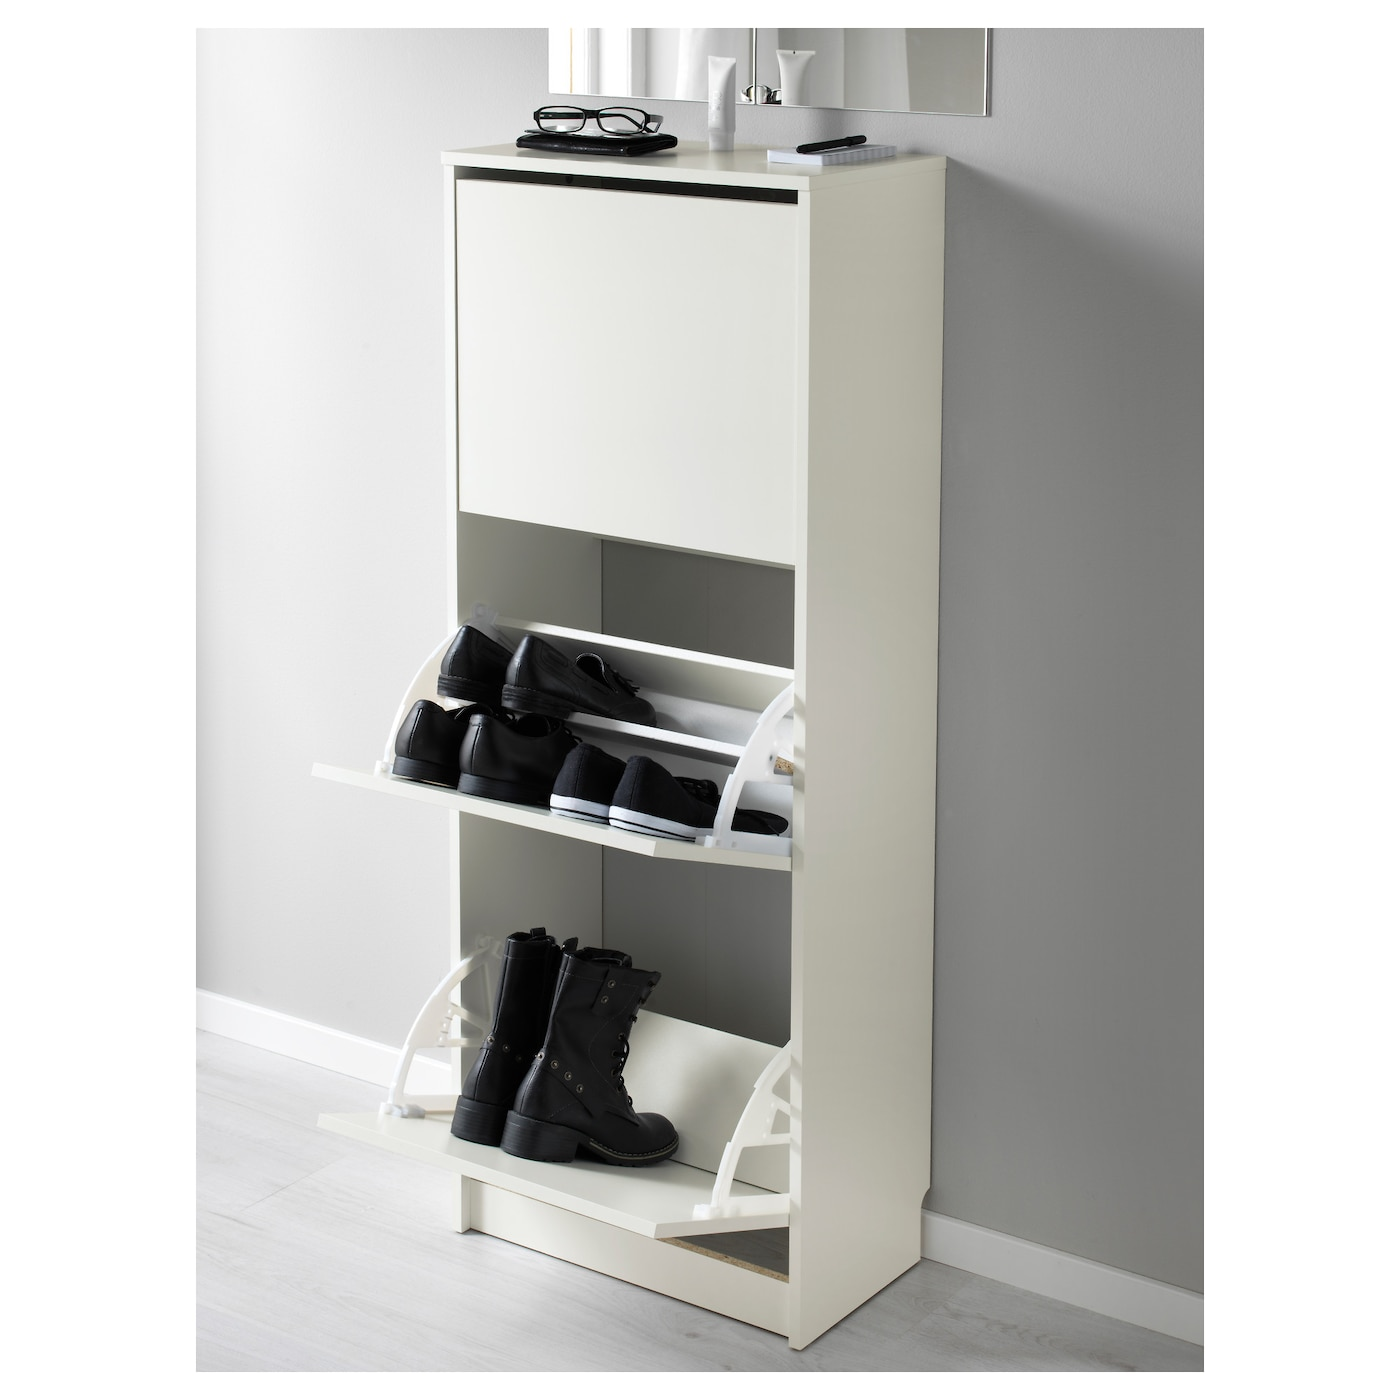 BISSA Shoe cabinet with 3 compartments White 49x135 cm - IKEA